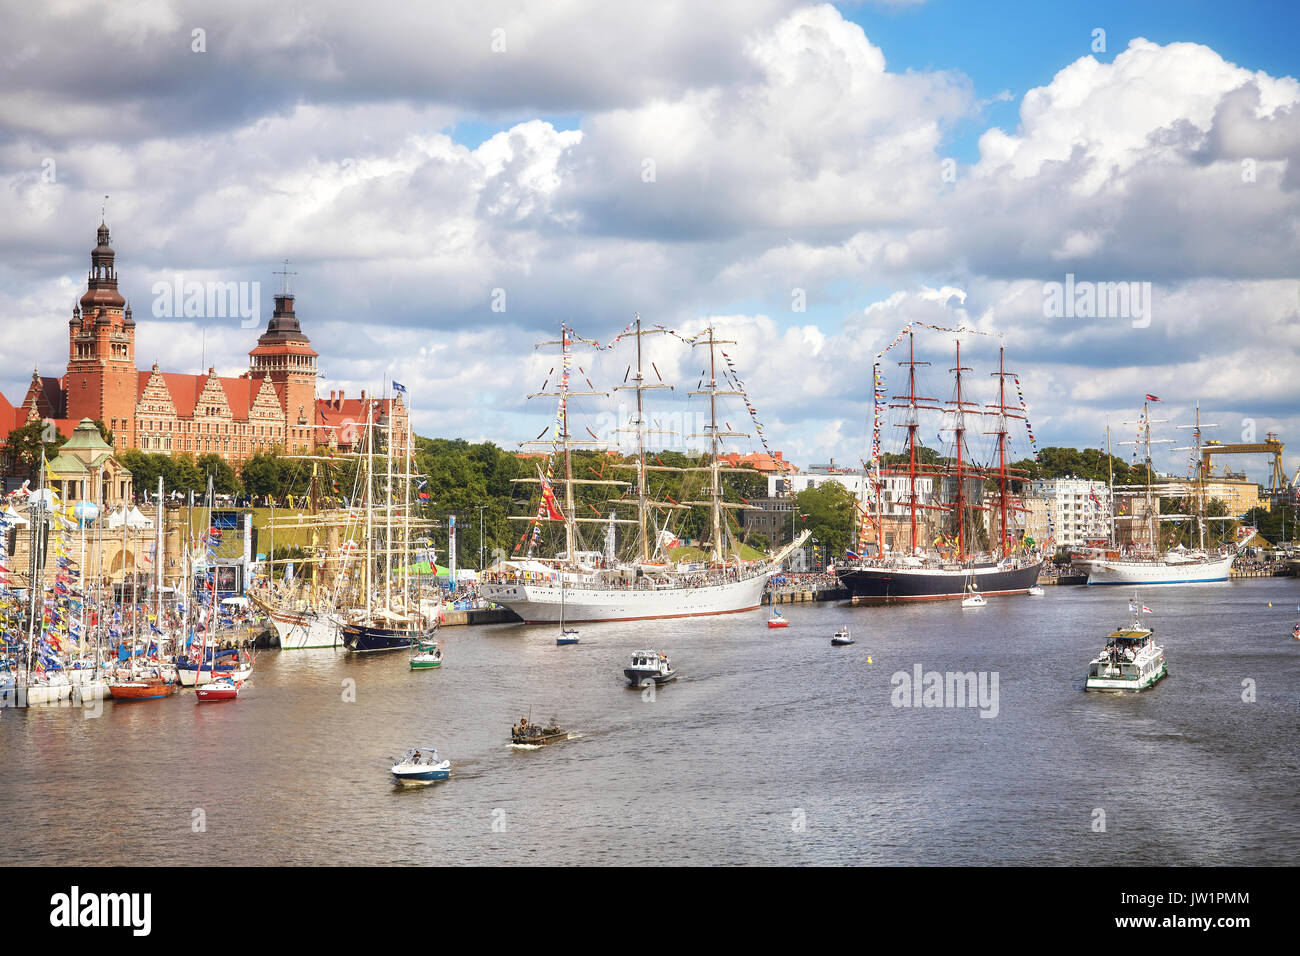 Szczecin, Poland - August 06, 2017: Sailing vessels anchored at Chrobry Embankment during Final of The Tall Ships Races 2017. - Stock Image